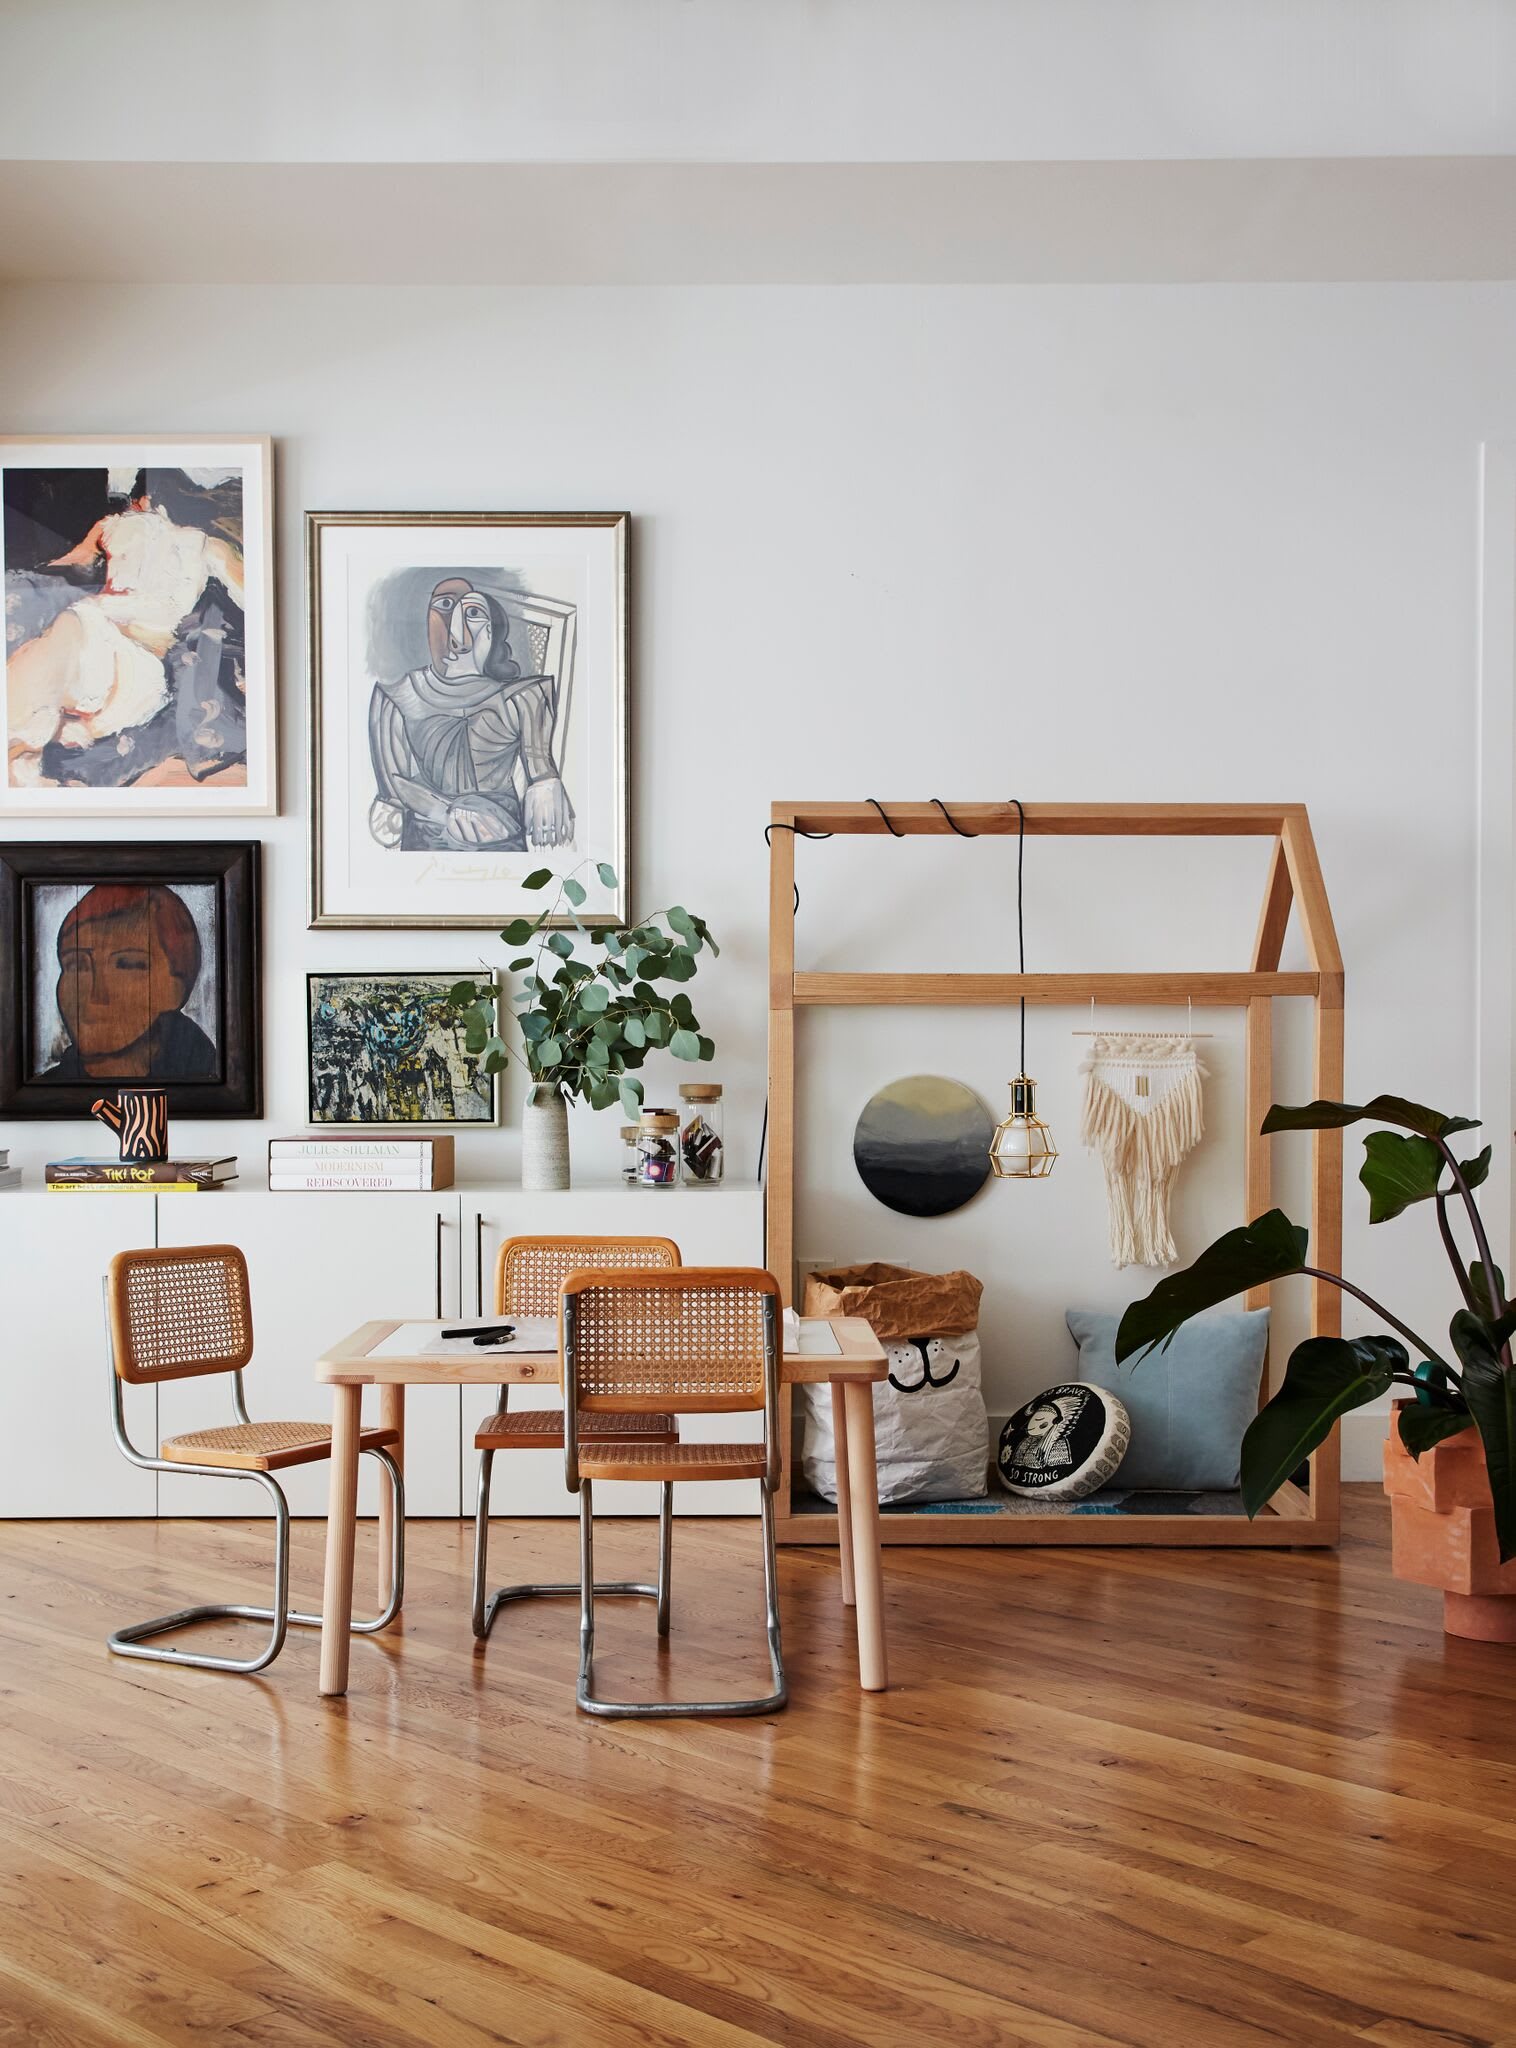 Interior Design by Tali Roth Designs seen at Private Residence, New York - 20th St Loft Interior Design